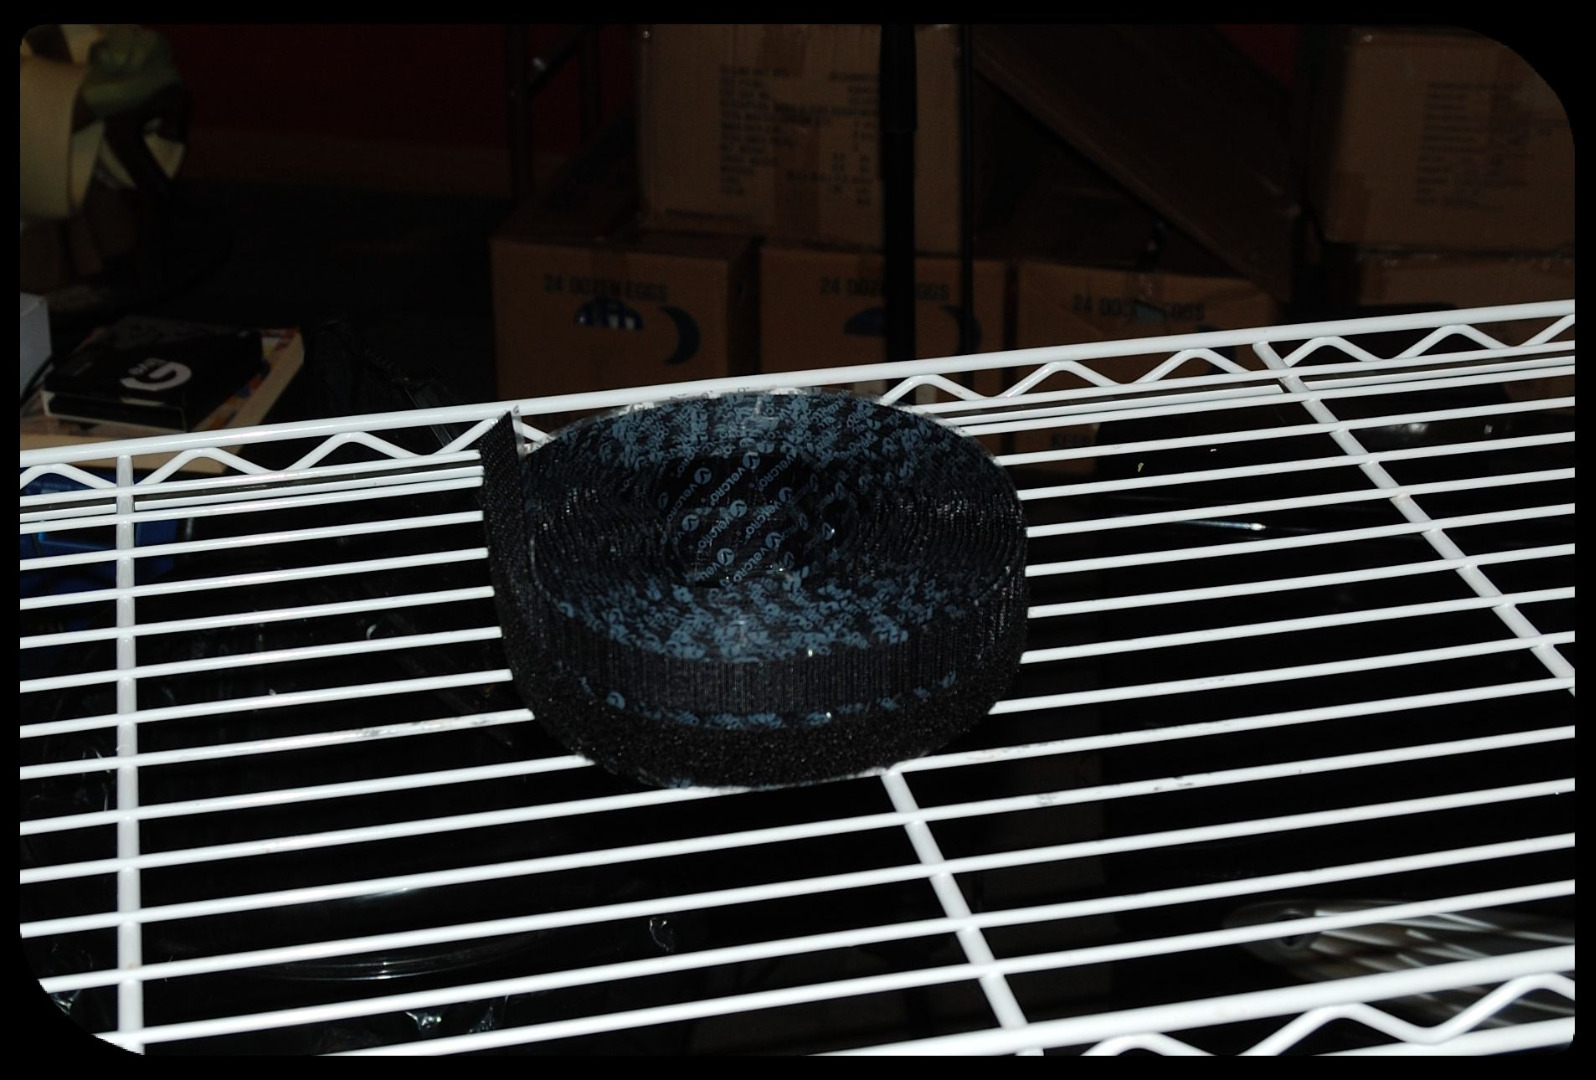 Picture of The Basic Hydroponics Setup Part 3 - Reflective Covering - the Side Mounting Tape